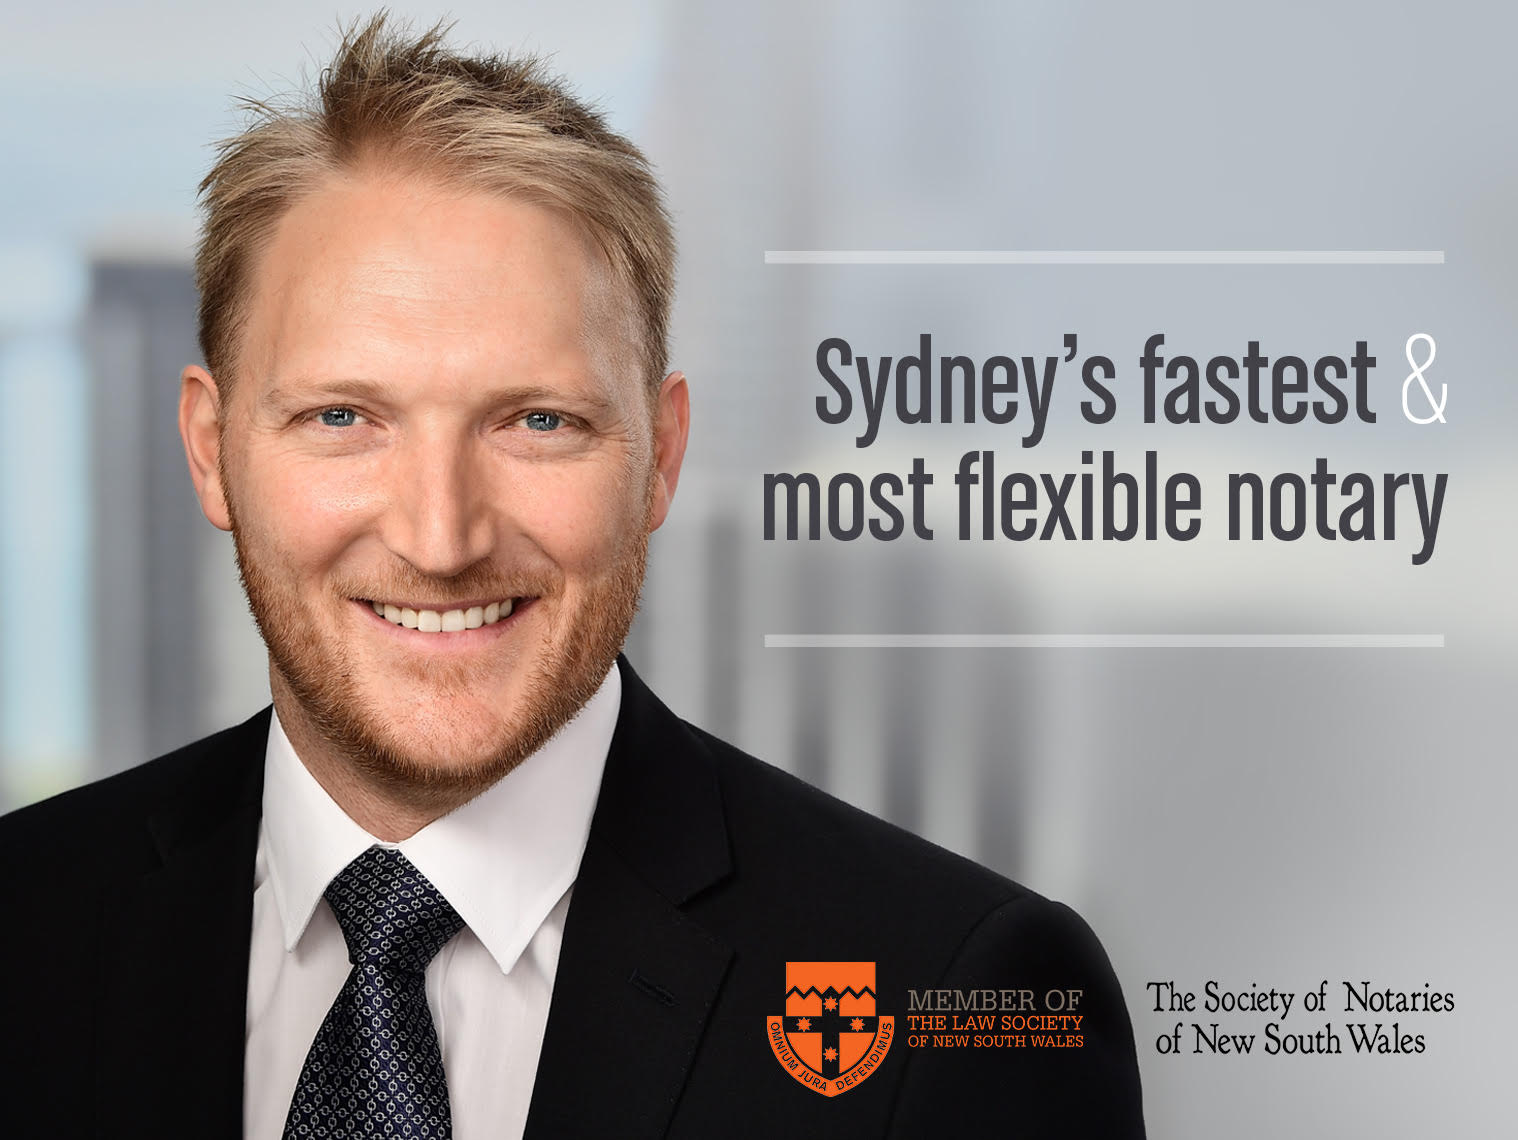 Hugh is available  on short notice  including weekends as Sydney's fastest and most flexible notary.